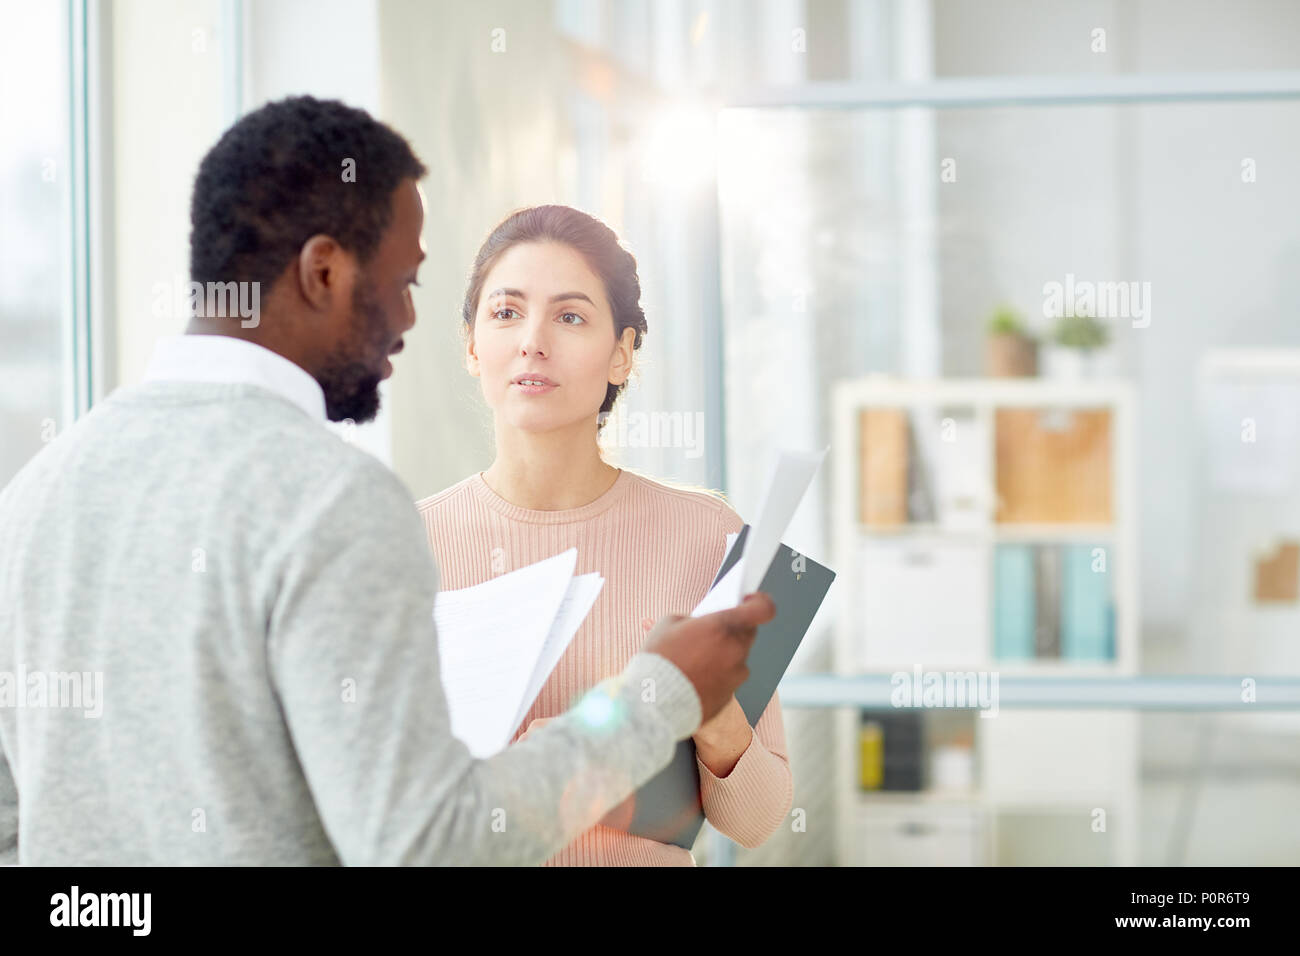 Bearded African American entrepreneur studying statistic data with young subordinate while standing at modern open plan office, lens flare - Stock Image